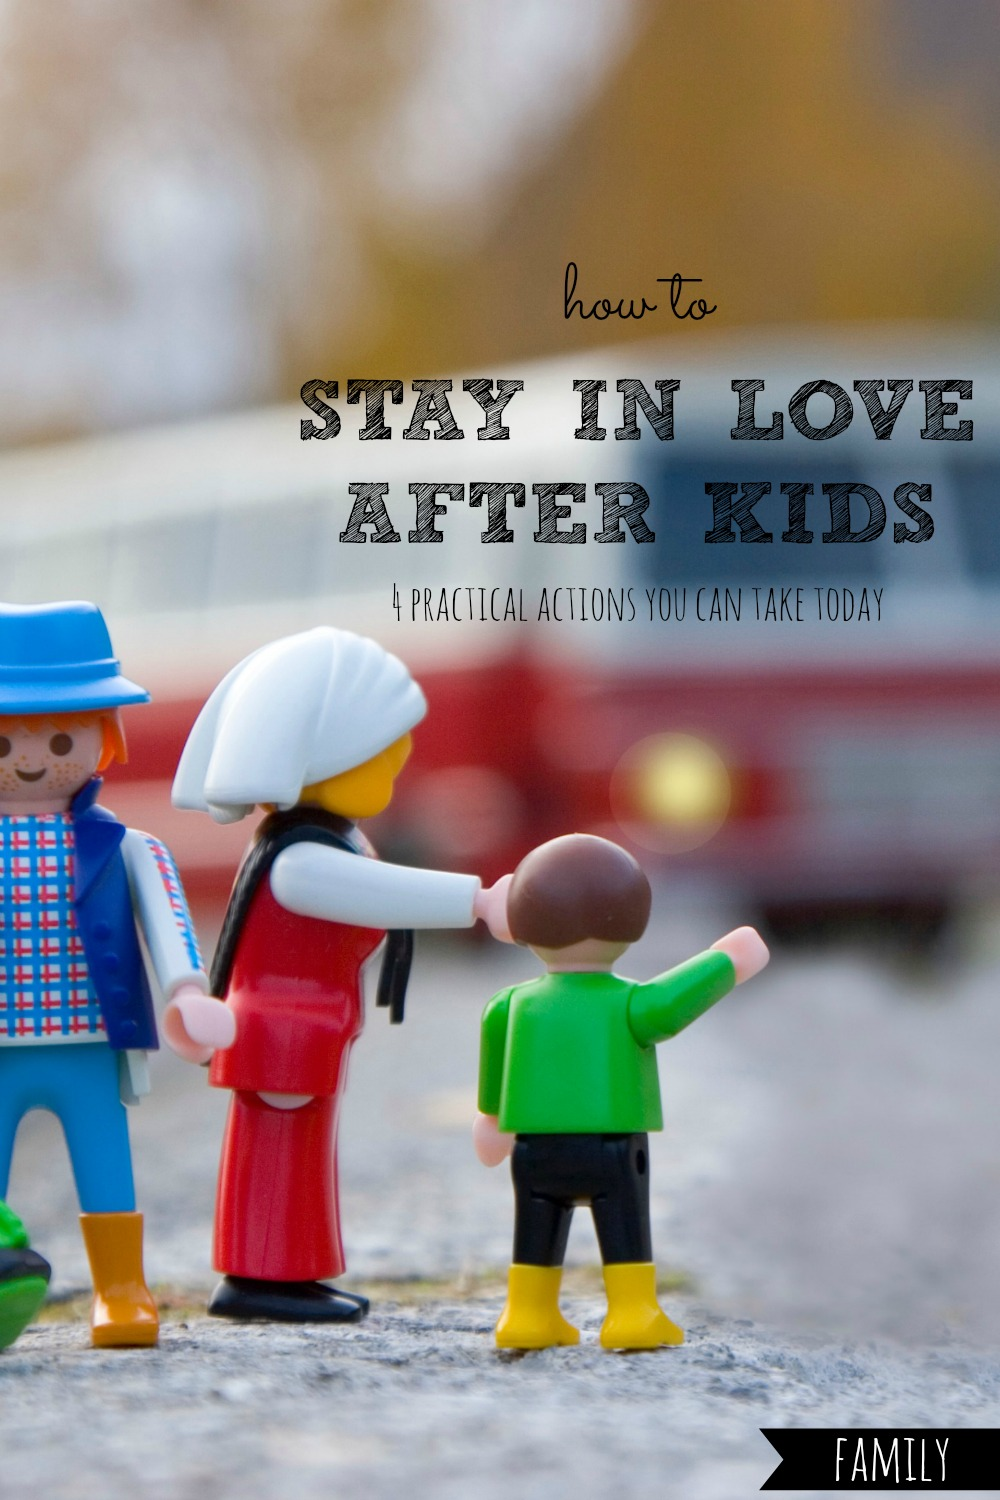 Ever feel like it's a struggle to stay in love after kids enter the picture? Here are four practical actions you can take TODAY to keep your romance alive. #stay #in #love #after #kids #marriage #marriages #married #relationship #relationships #husband #husbands #wife #wives #life #share #experiences #pillow #talk #touch #touching #avoid #distractions #live #moment